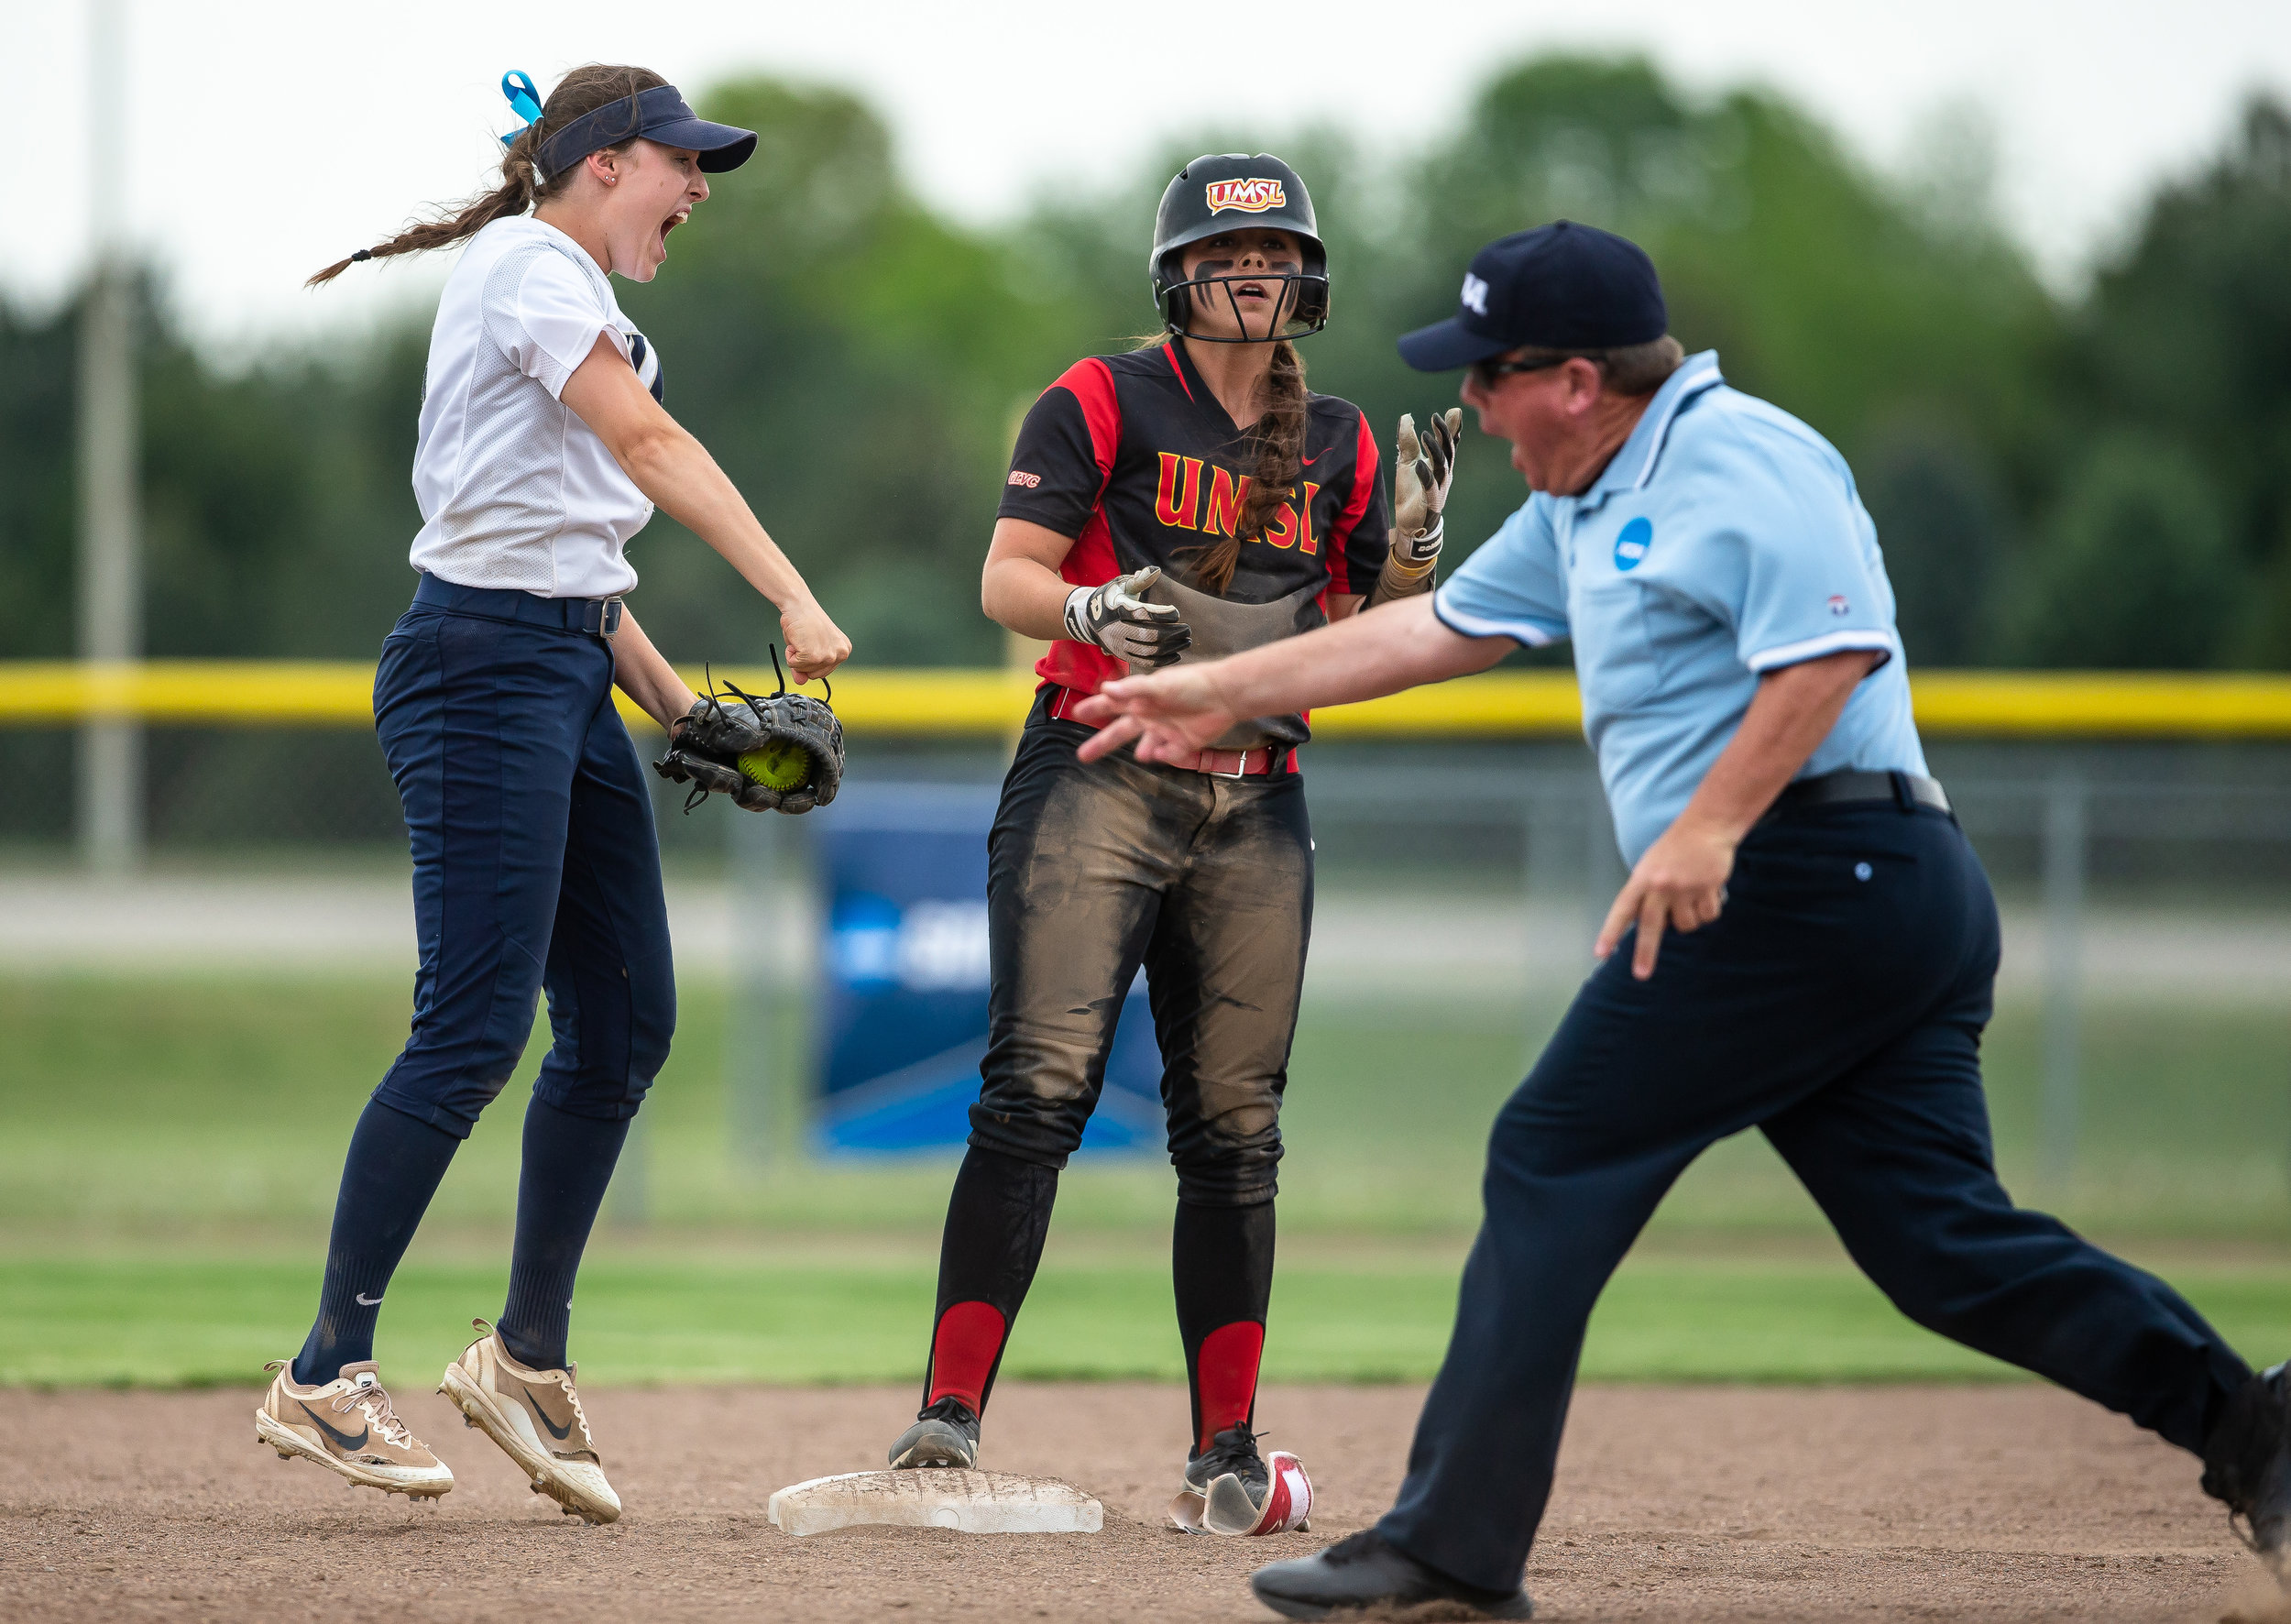 University of Illinois Springfield's Bree Derhake (6) reacts after tagging out University of Missouri-St. Louis' Reagan Osborn (18) at second base as she lifts her foot from the bag in the 9th inning in the second round of the NCAA Division II Midwest 2 Region Softball Tournament at the Land of Lincoln Junior Olympic Softball Complex, Friday, May 11, 2018, in Springfield, Ill. [Justin L. Fowler/The State Journal-Register]